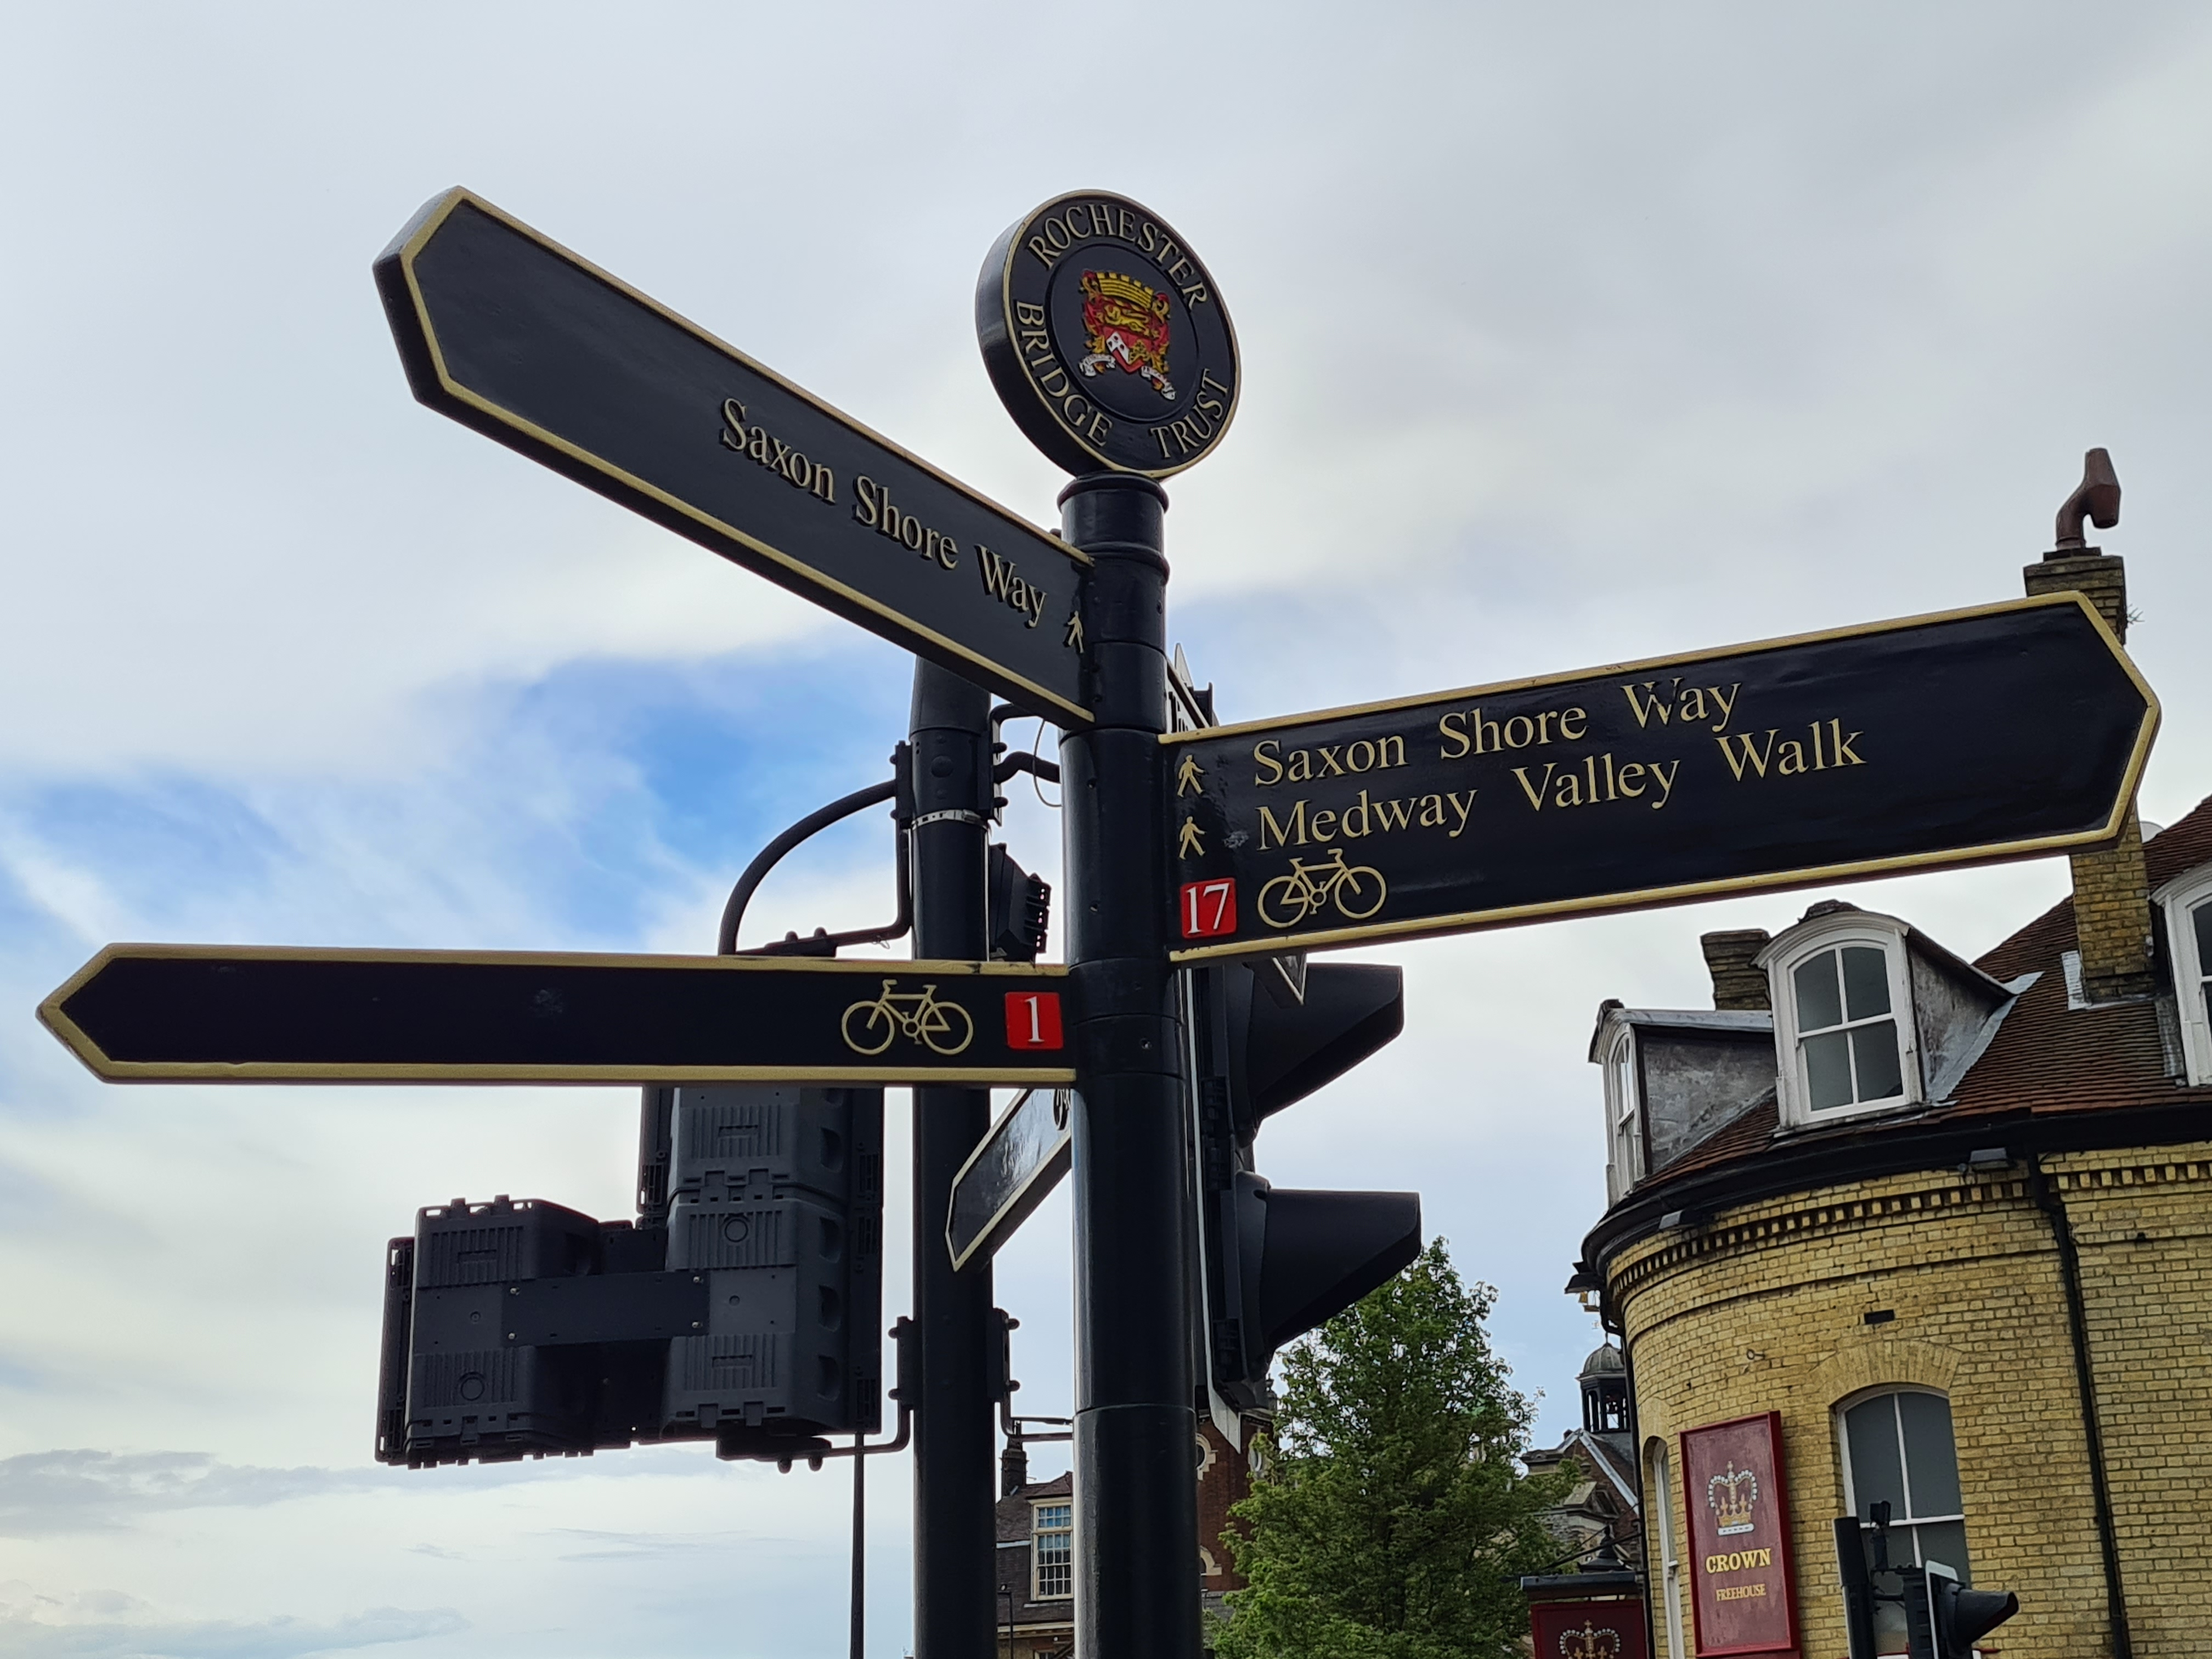 Trail signage for both Saxon Shore Way and the end (or beginning) of the Medway Valley Walk at Rochester bridge